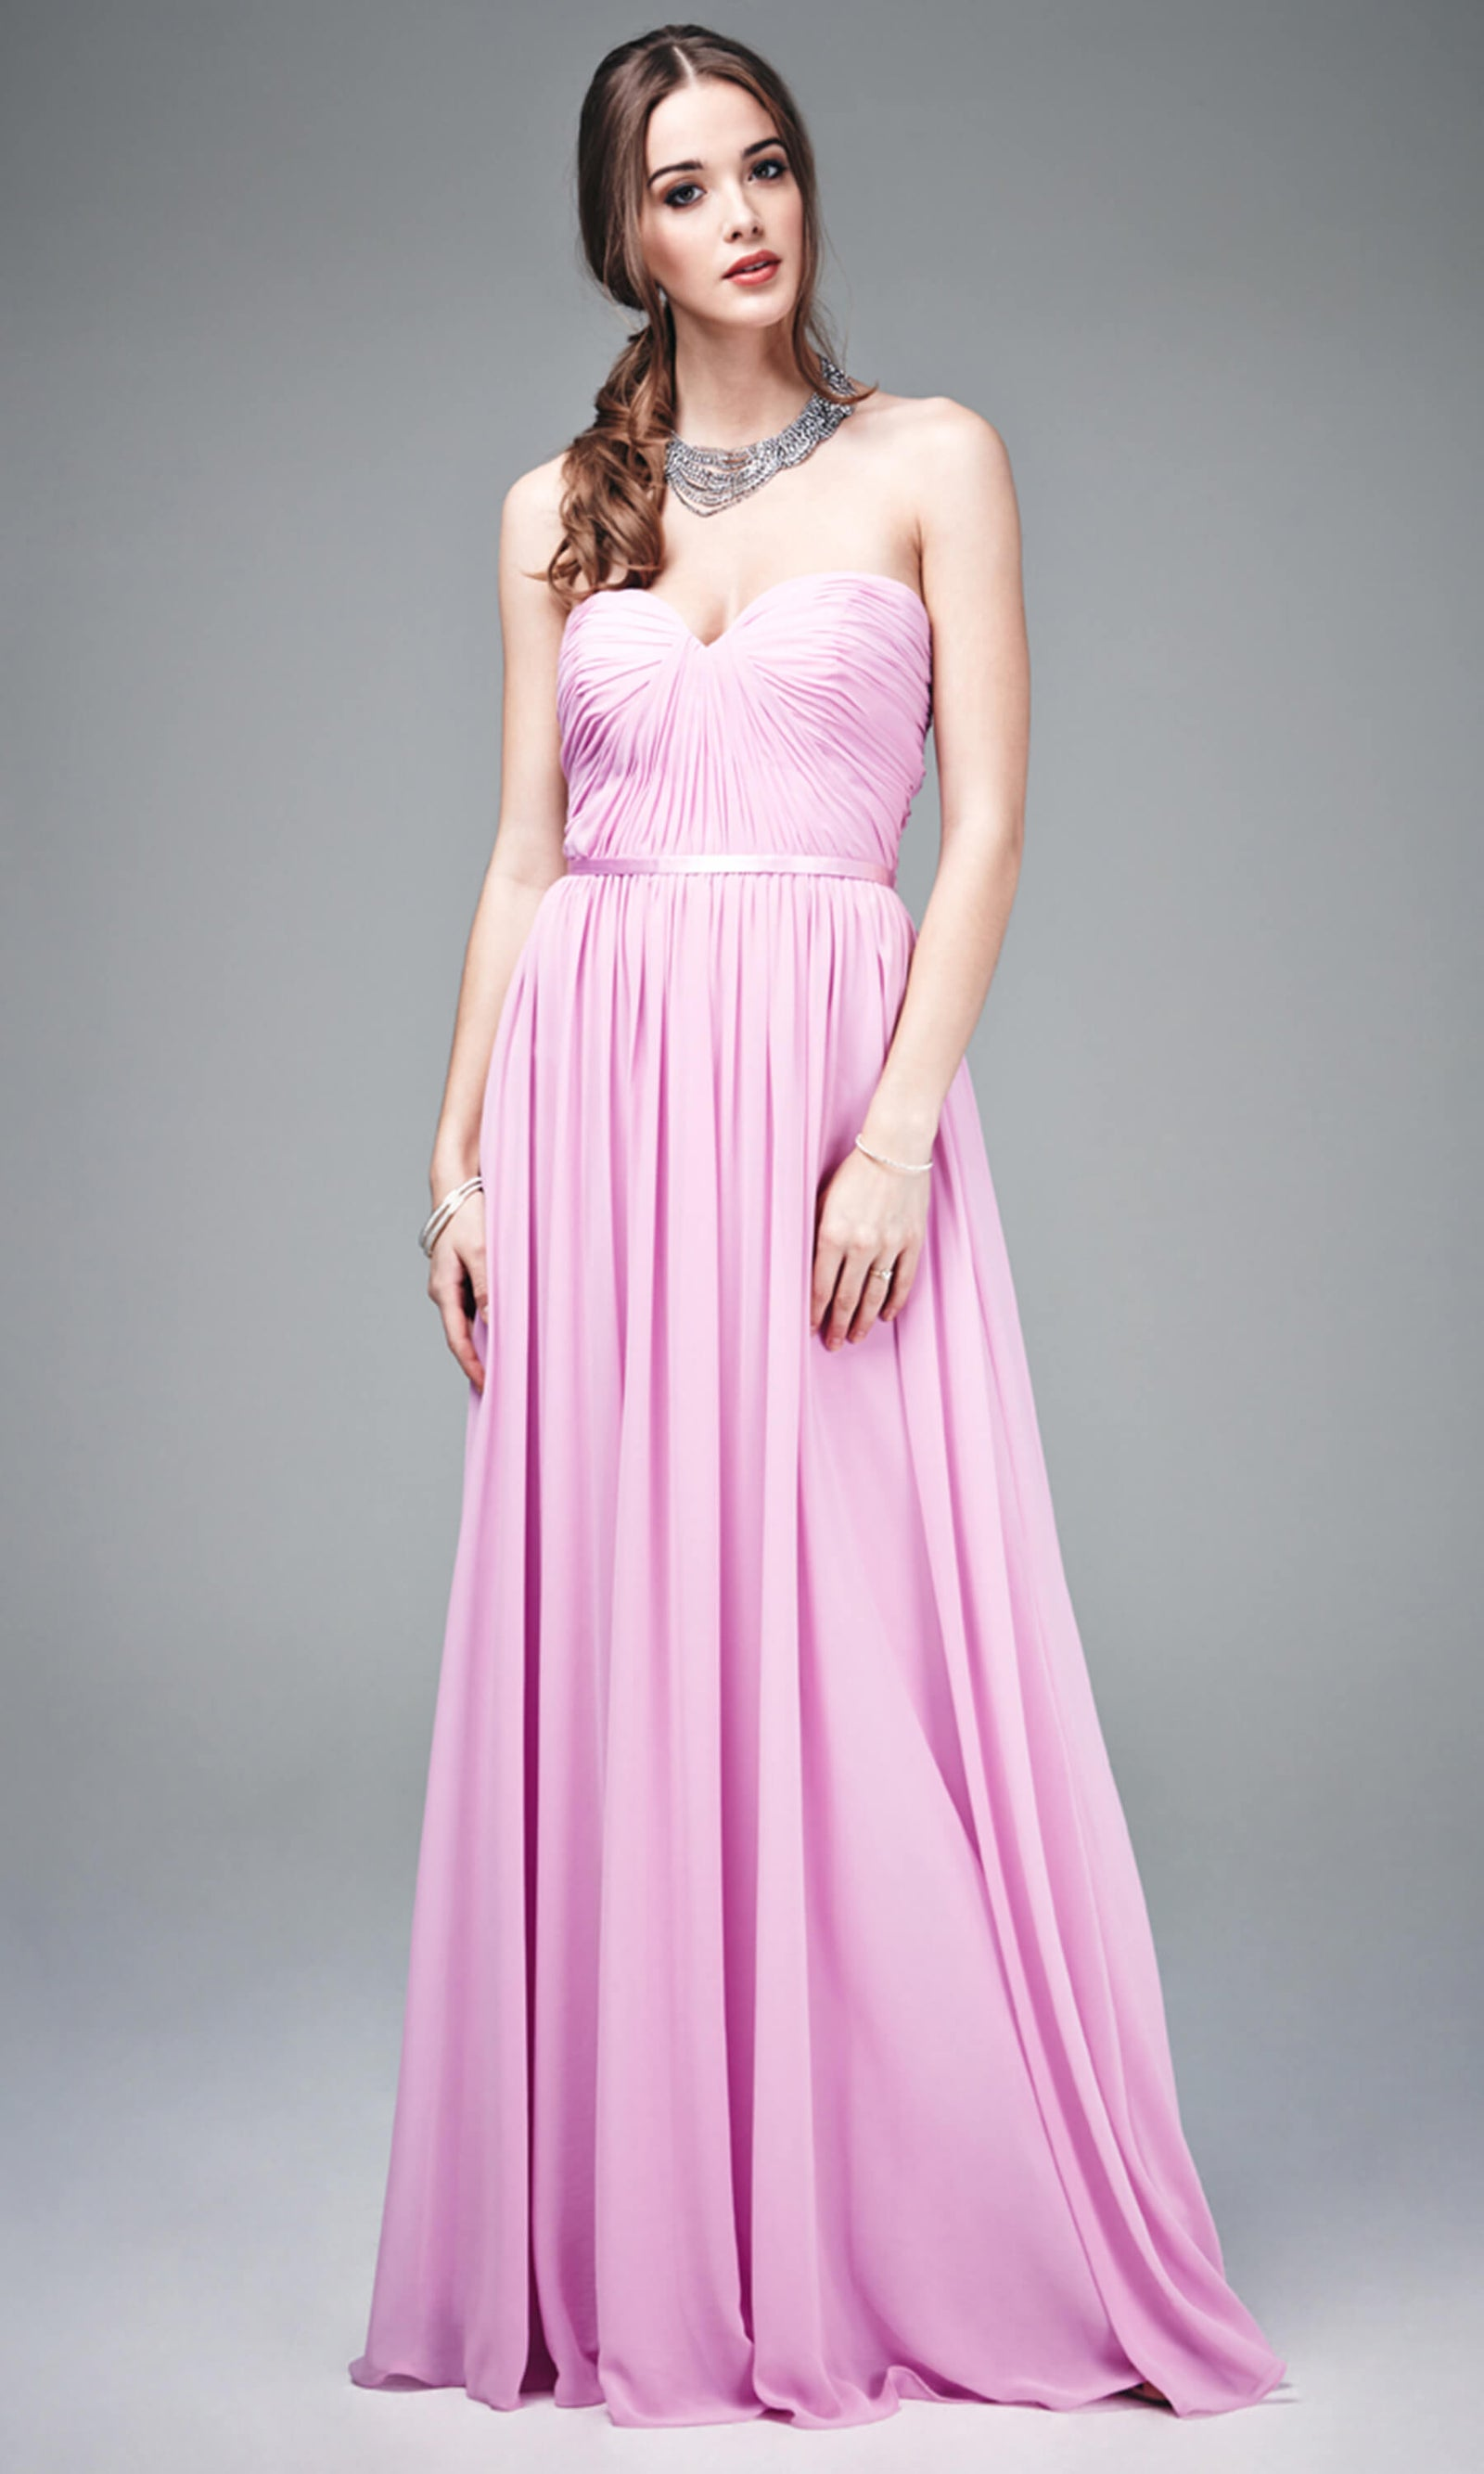 MC181073 Blossom Mascara Strapless Floaty Evening Dress